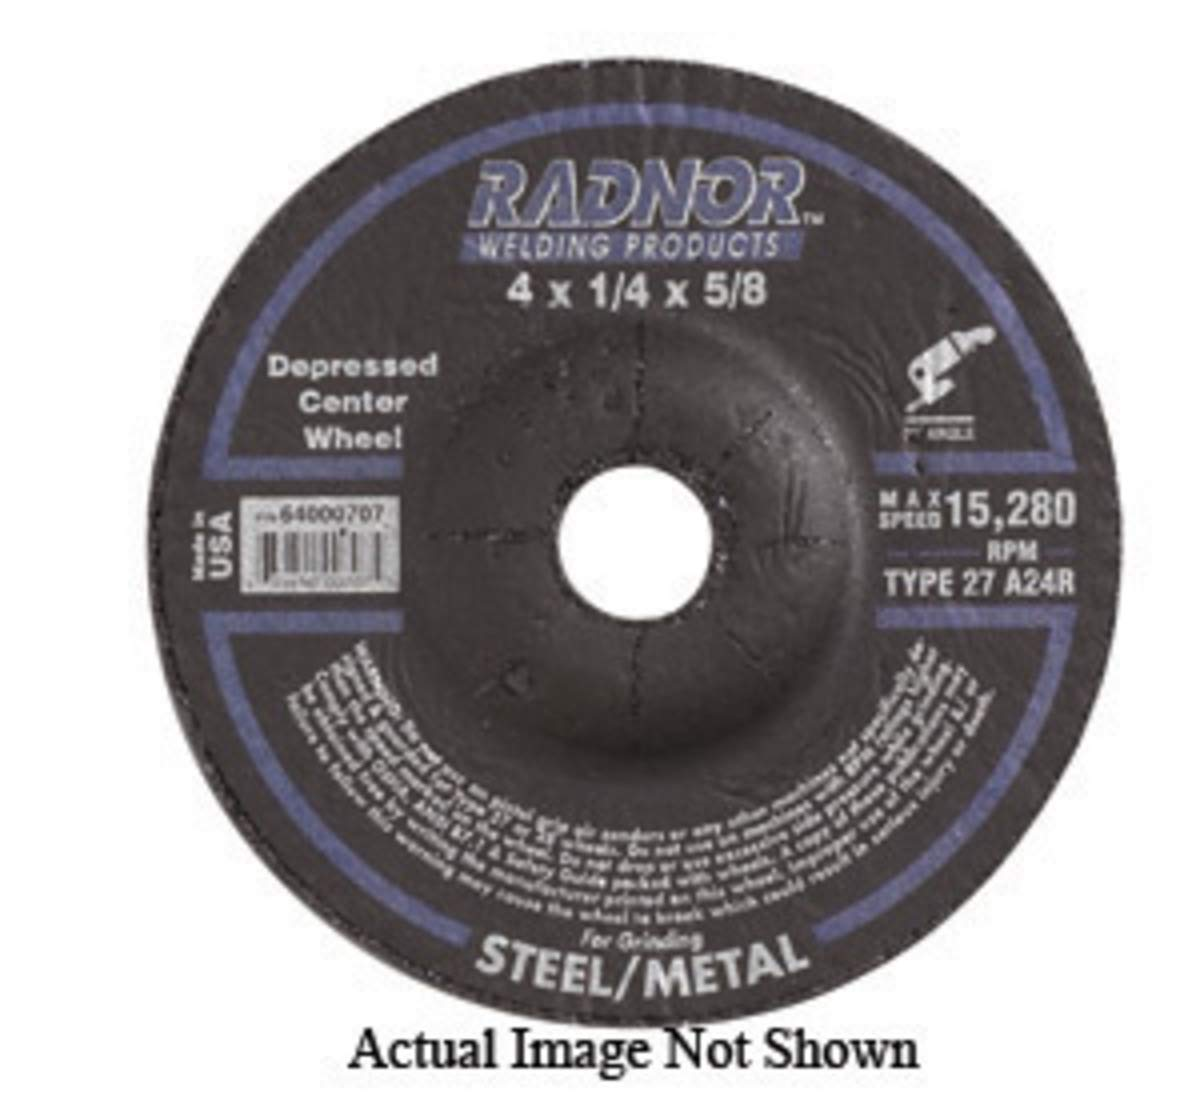 Radnor 4'' X 1/8'' X 3/8'' A24R Aluminum Oxide Type 27 Depressed Center Cut Off Wheel For Use With Right Angle Grinder On Metal And Steel, Package Size: 20 Each by Radnor